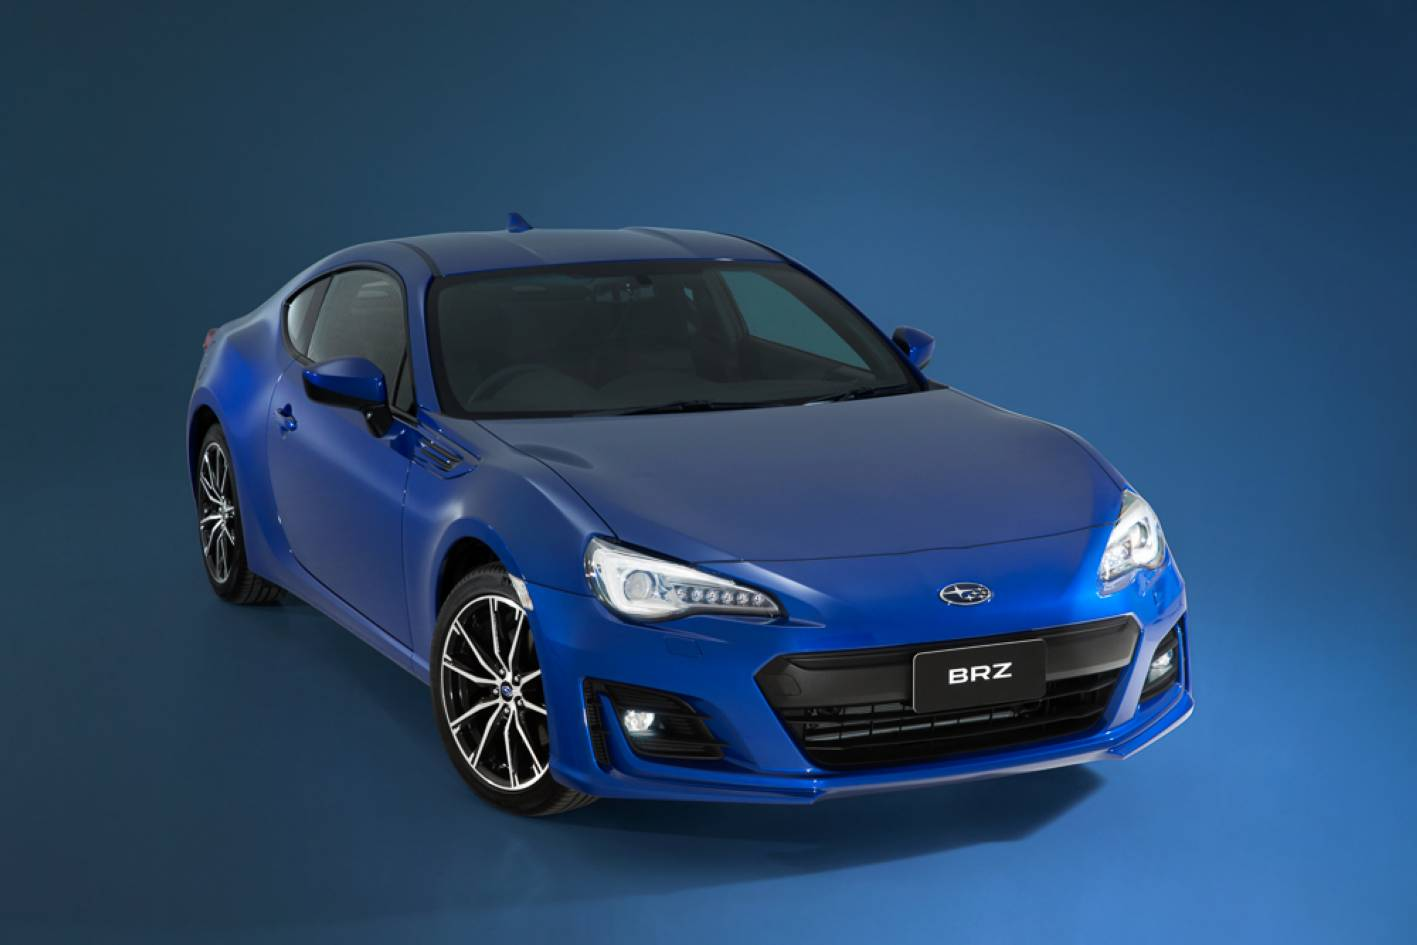 2017 Upgraded Subaru Brz Pricing And Specification